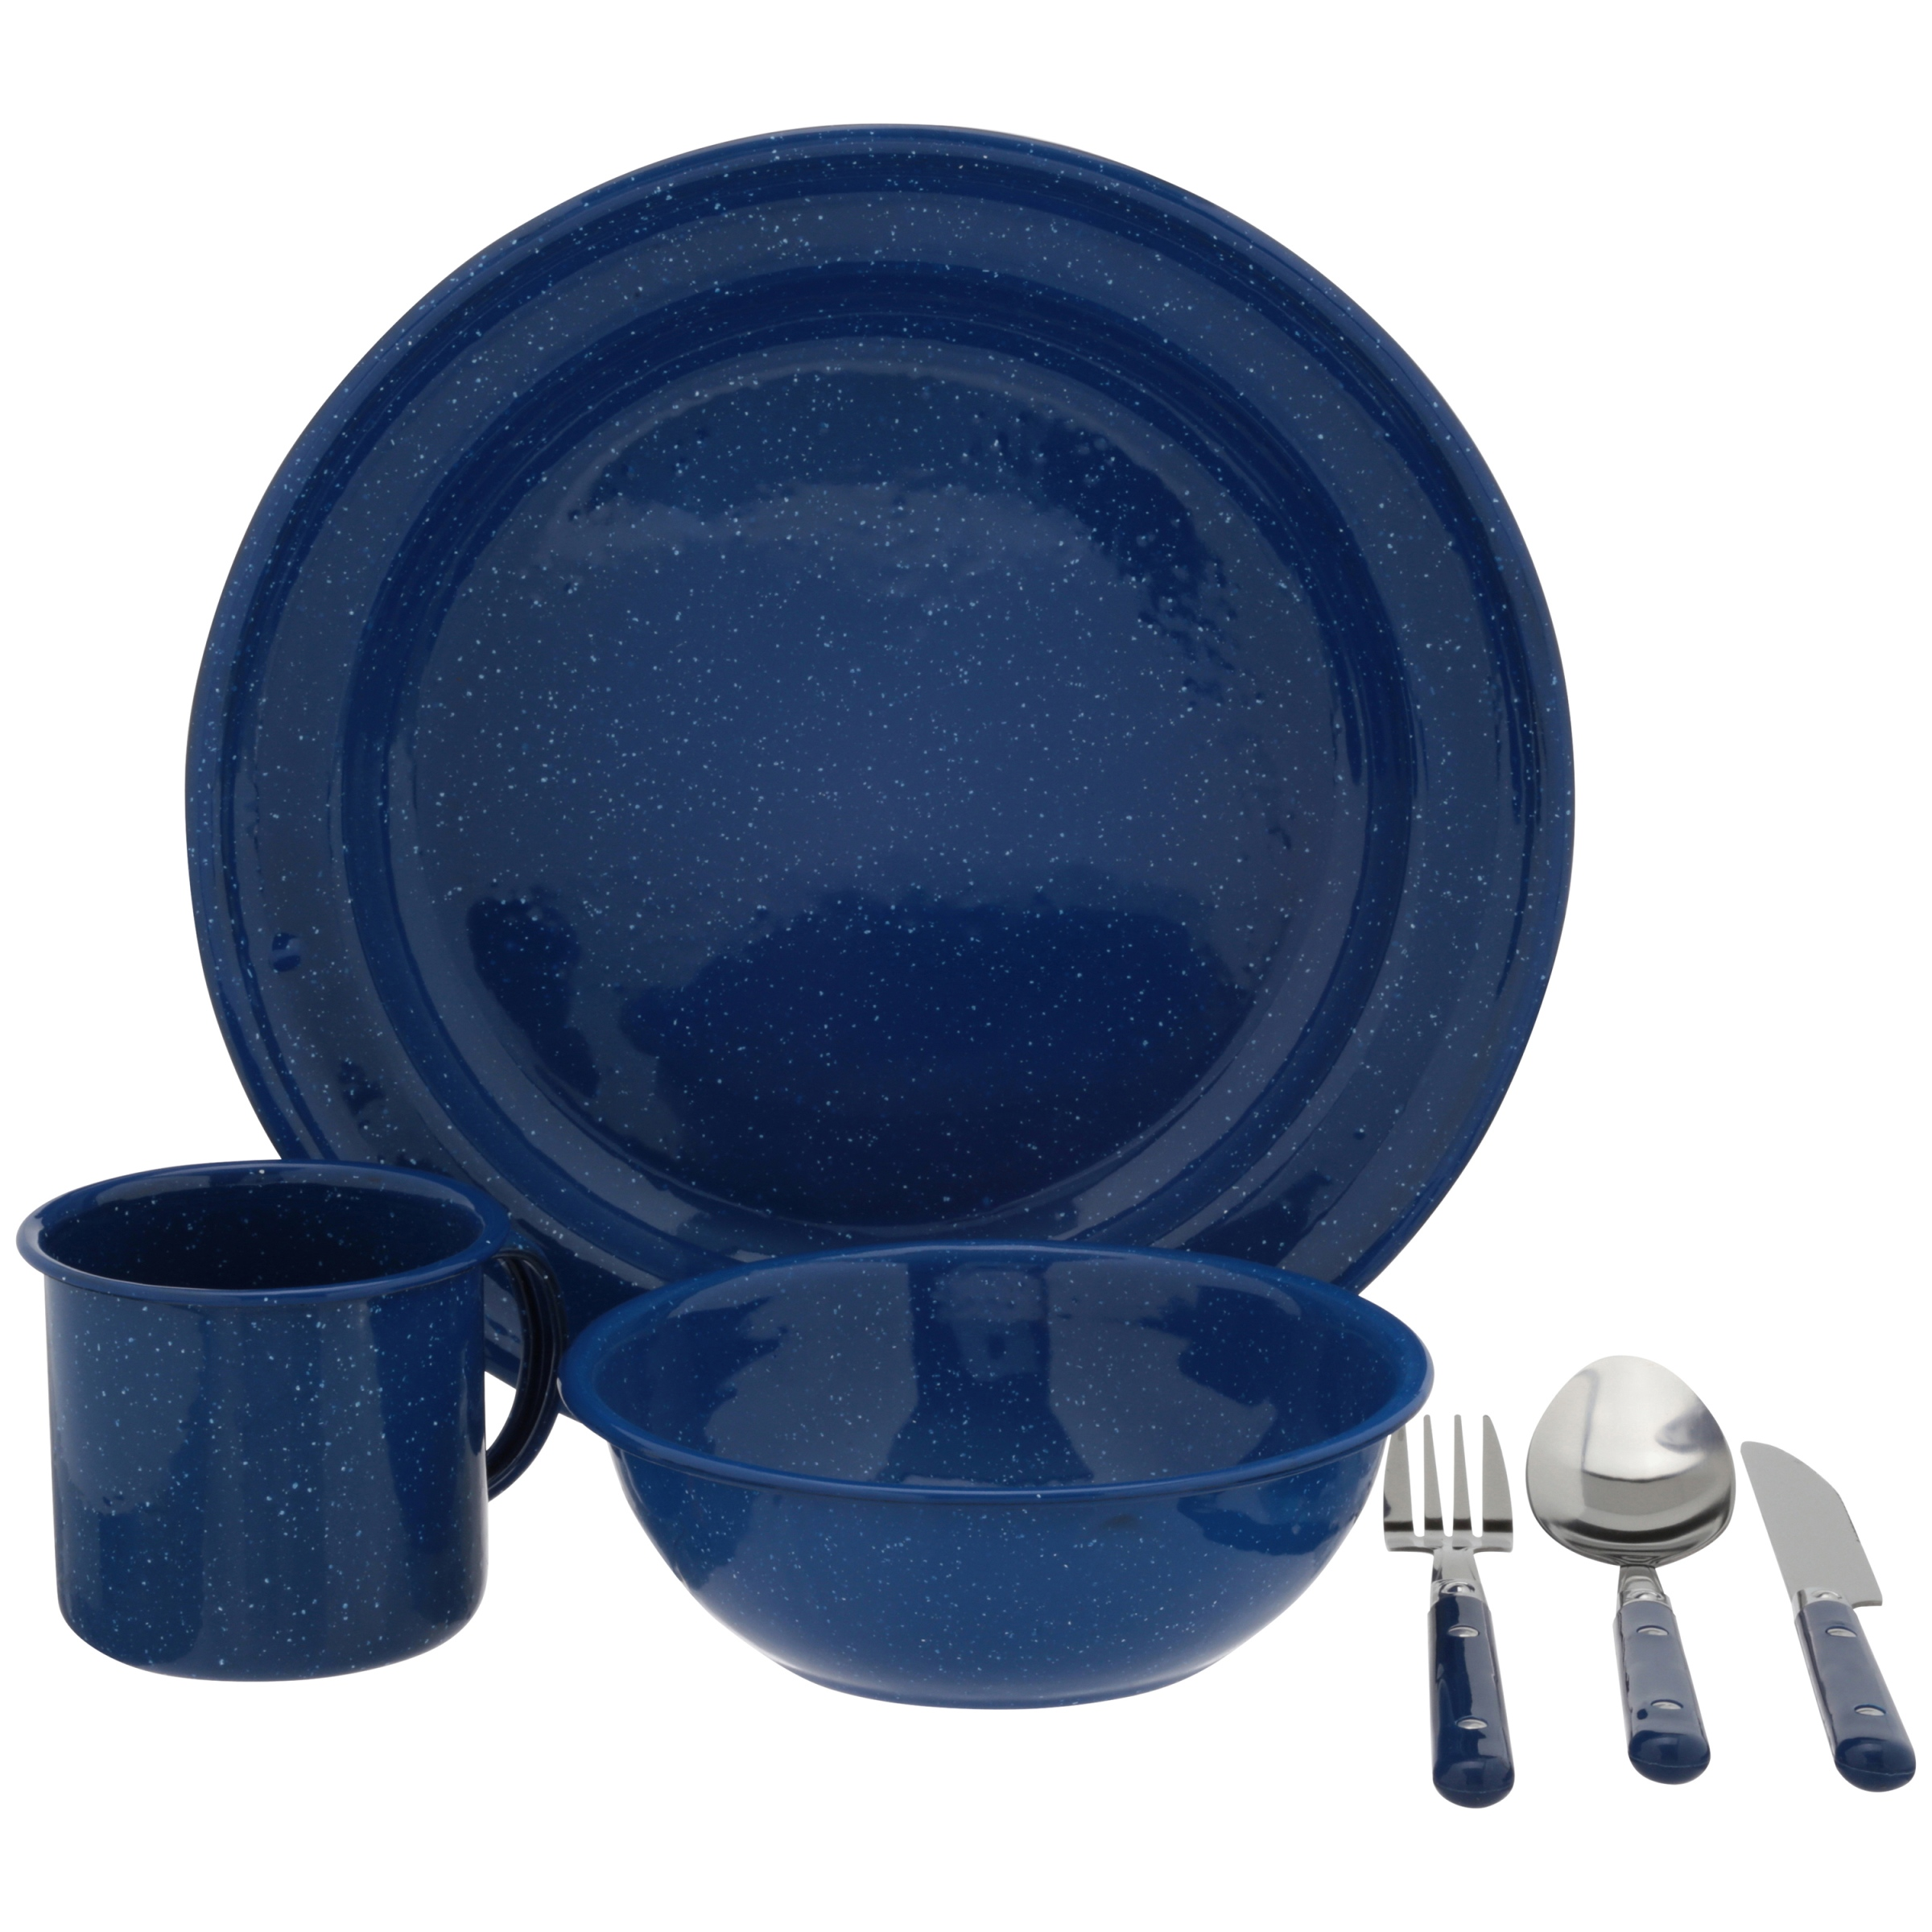 Ozark Trail 24-Piece Dinnerware Set, Blue